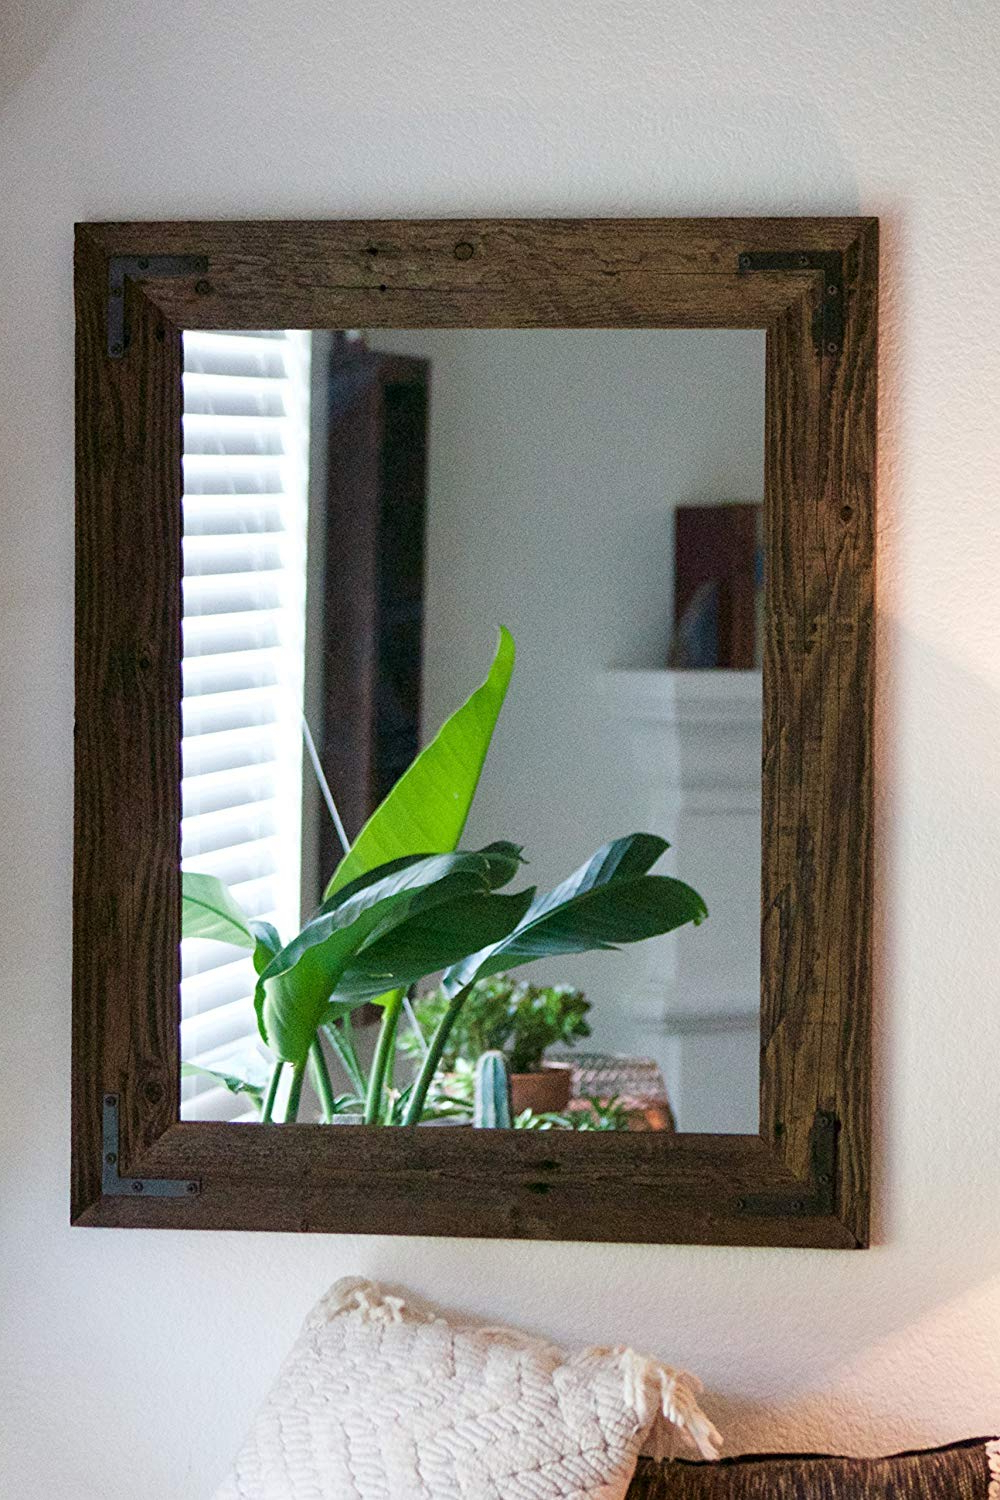 Rustic Wall Mirrors Intended For Well Known Rustic Wall Mirror – Large Wall Mirror – 24 X 30 Vanity Mirror – Bathroom Mirror – Rustic Mirror – Reclaimed Wood Mirror – Bathroom Vanity (View 7 of 20)